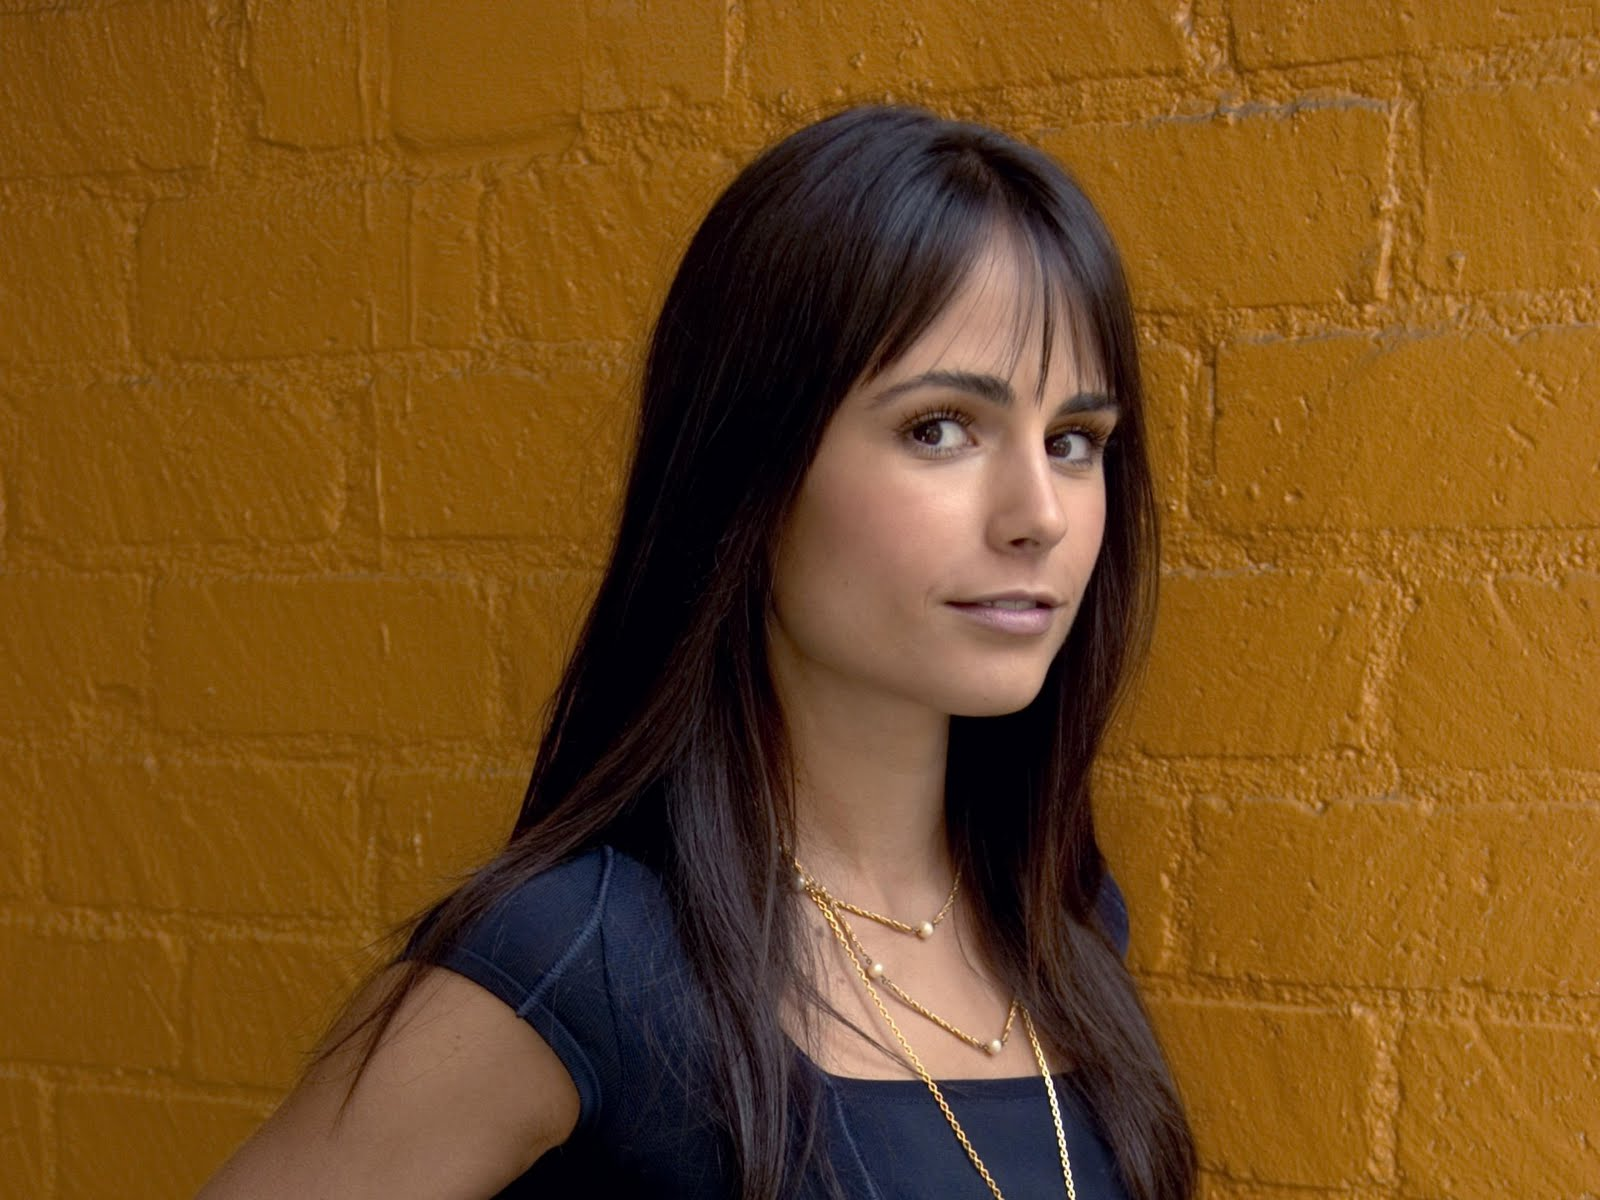 jordana brewster hd wallpapers - celebrities hd wallpapers